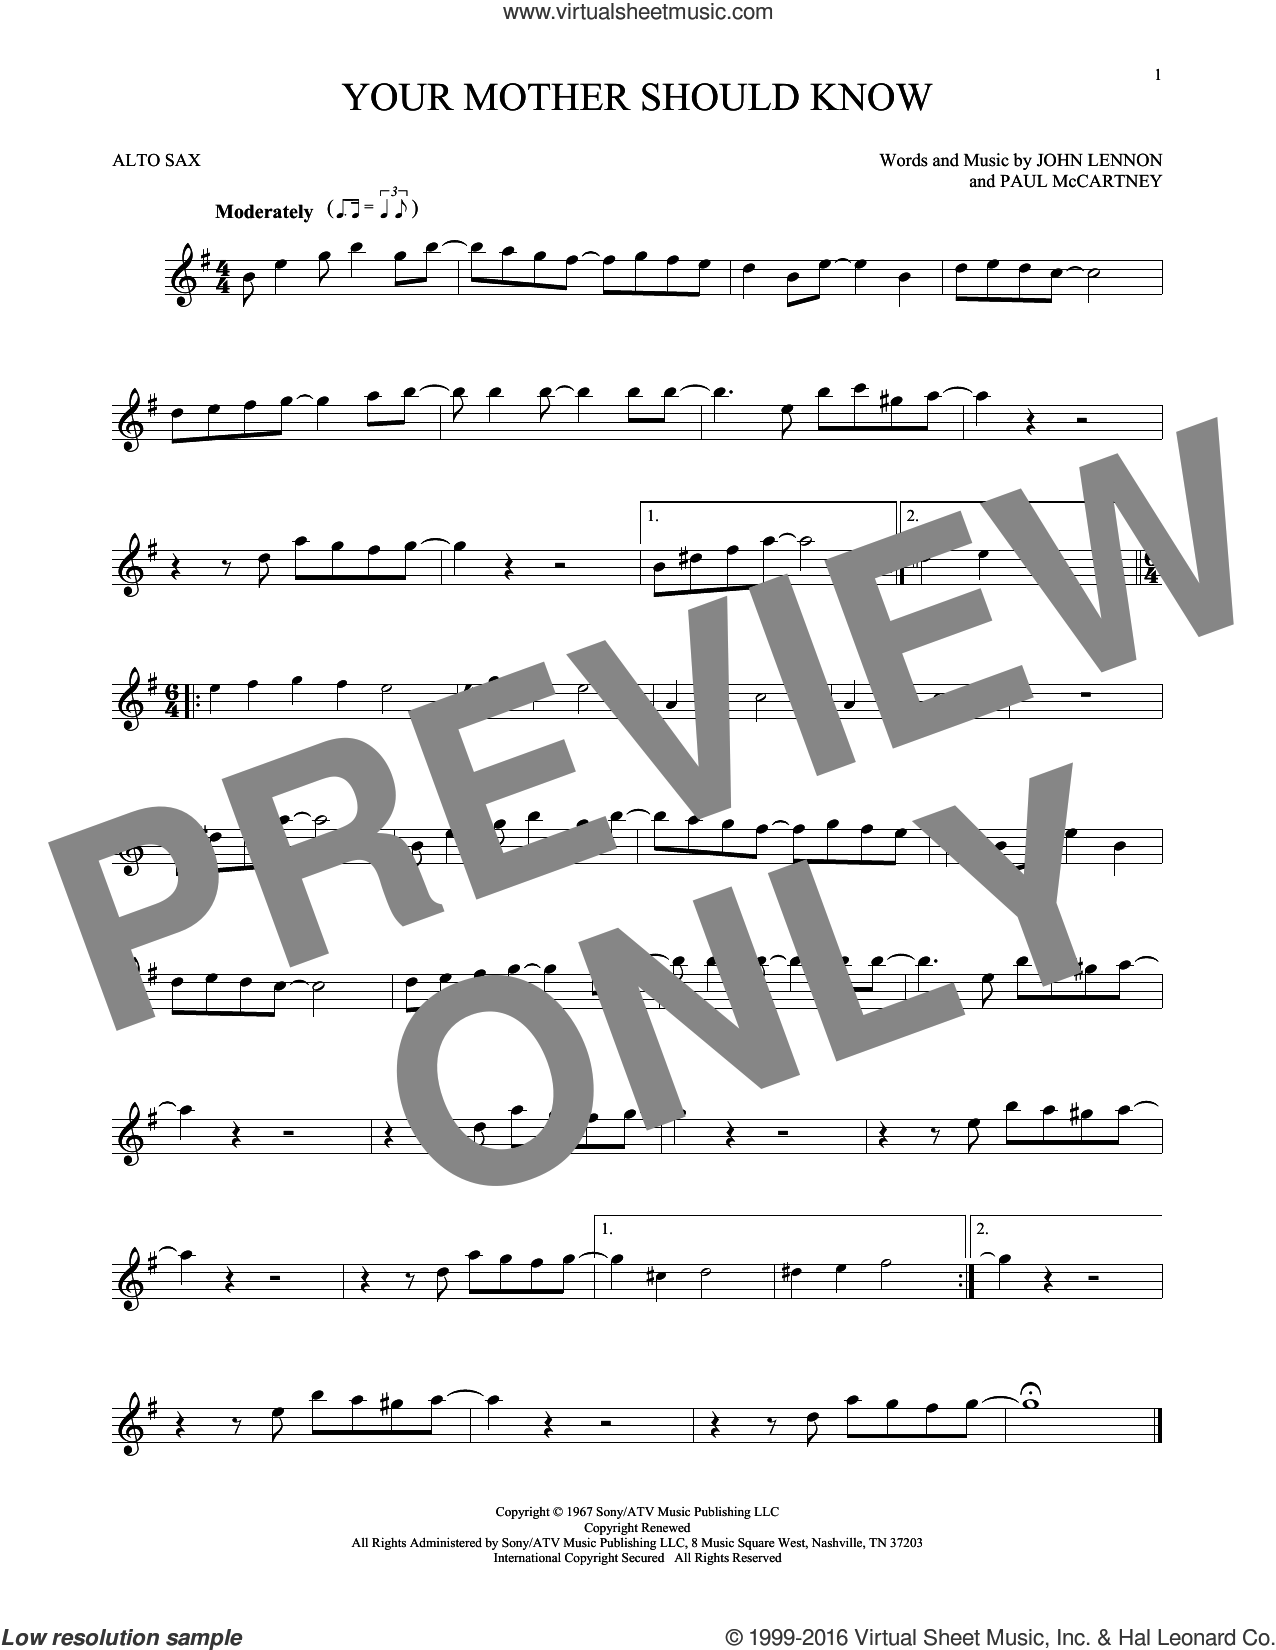 Your Mother Should Know sheet music for alto saxophone solo by The Beatles, John Lennon and Paul McCartney, intermediate. Score Image Preview.